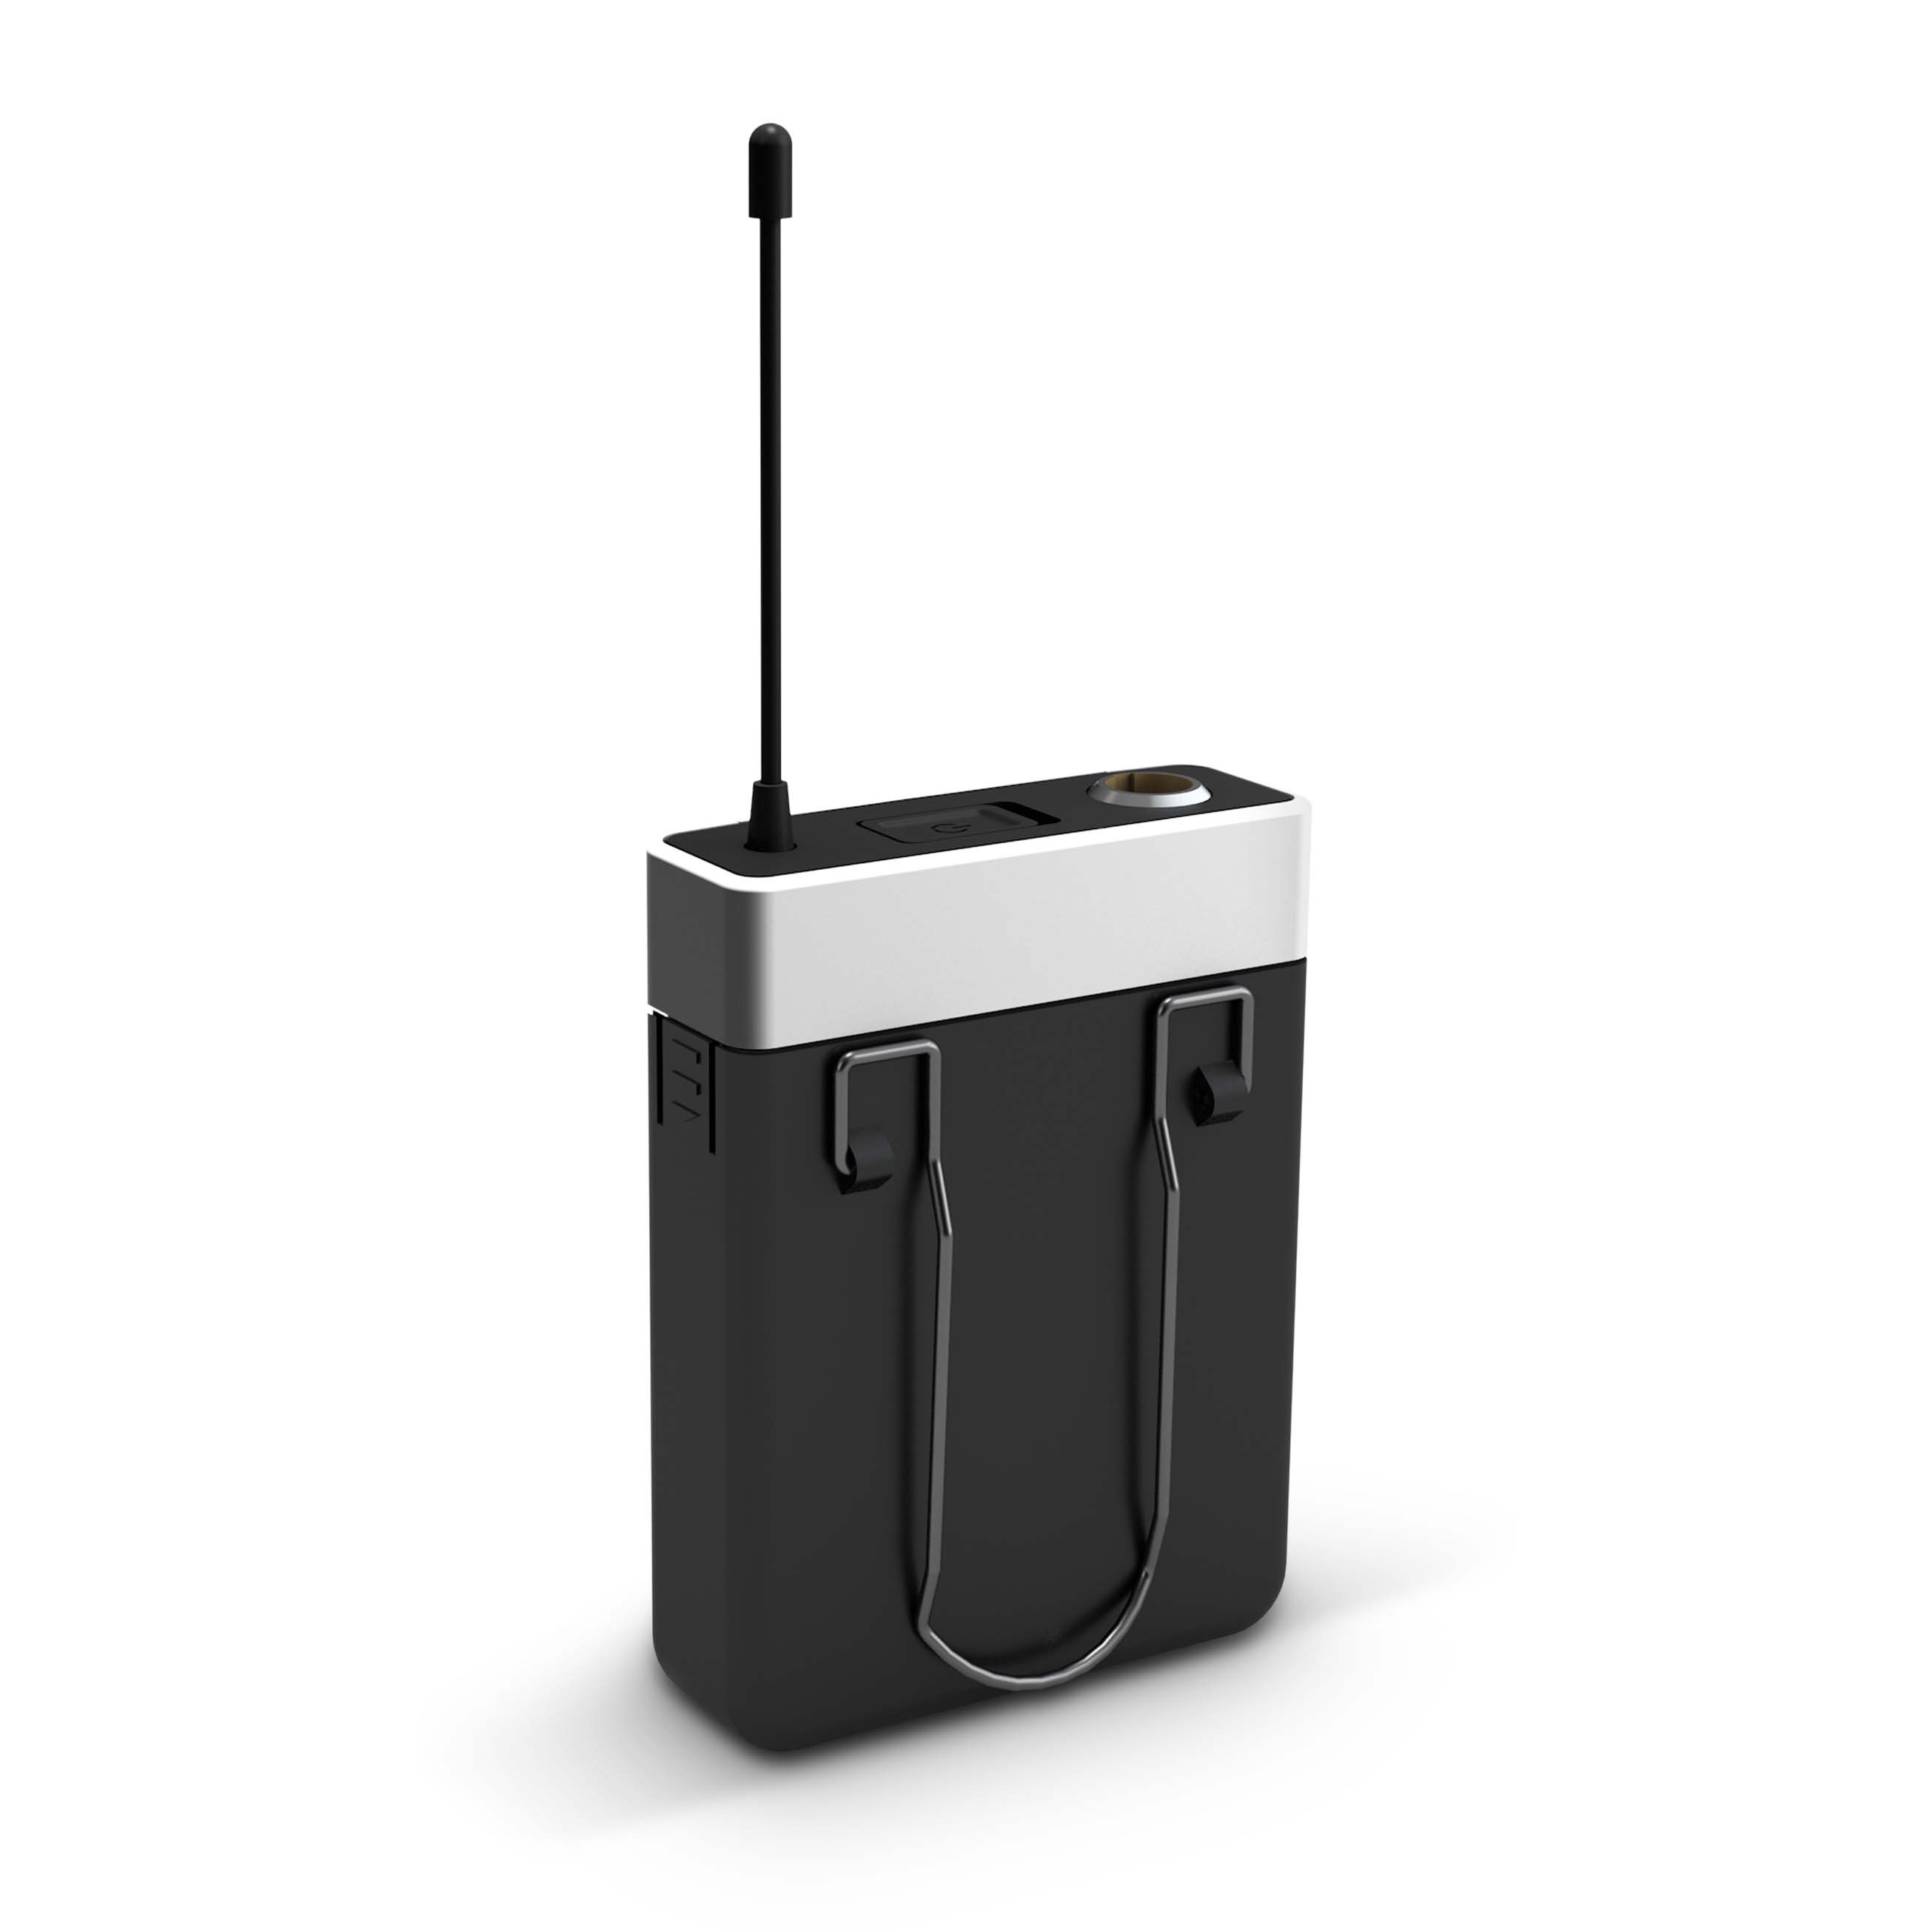 U508 HBH 2 Wireless Microphone System with Bodypack, Headset and Dynamic Handheld Microphone